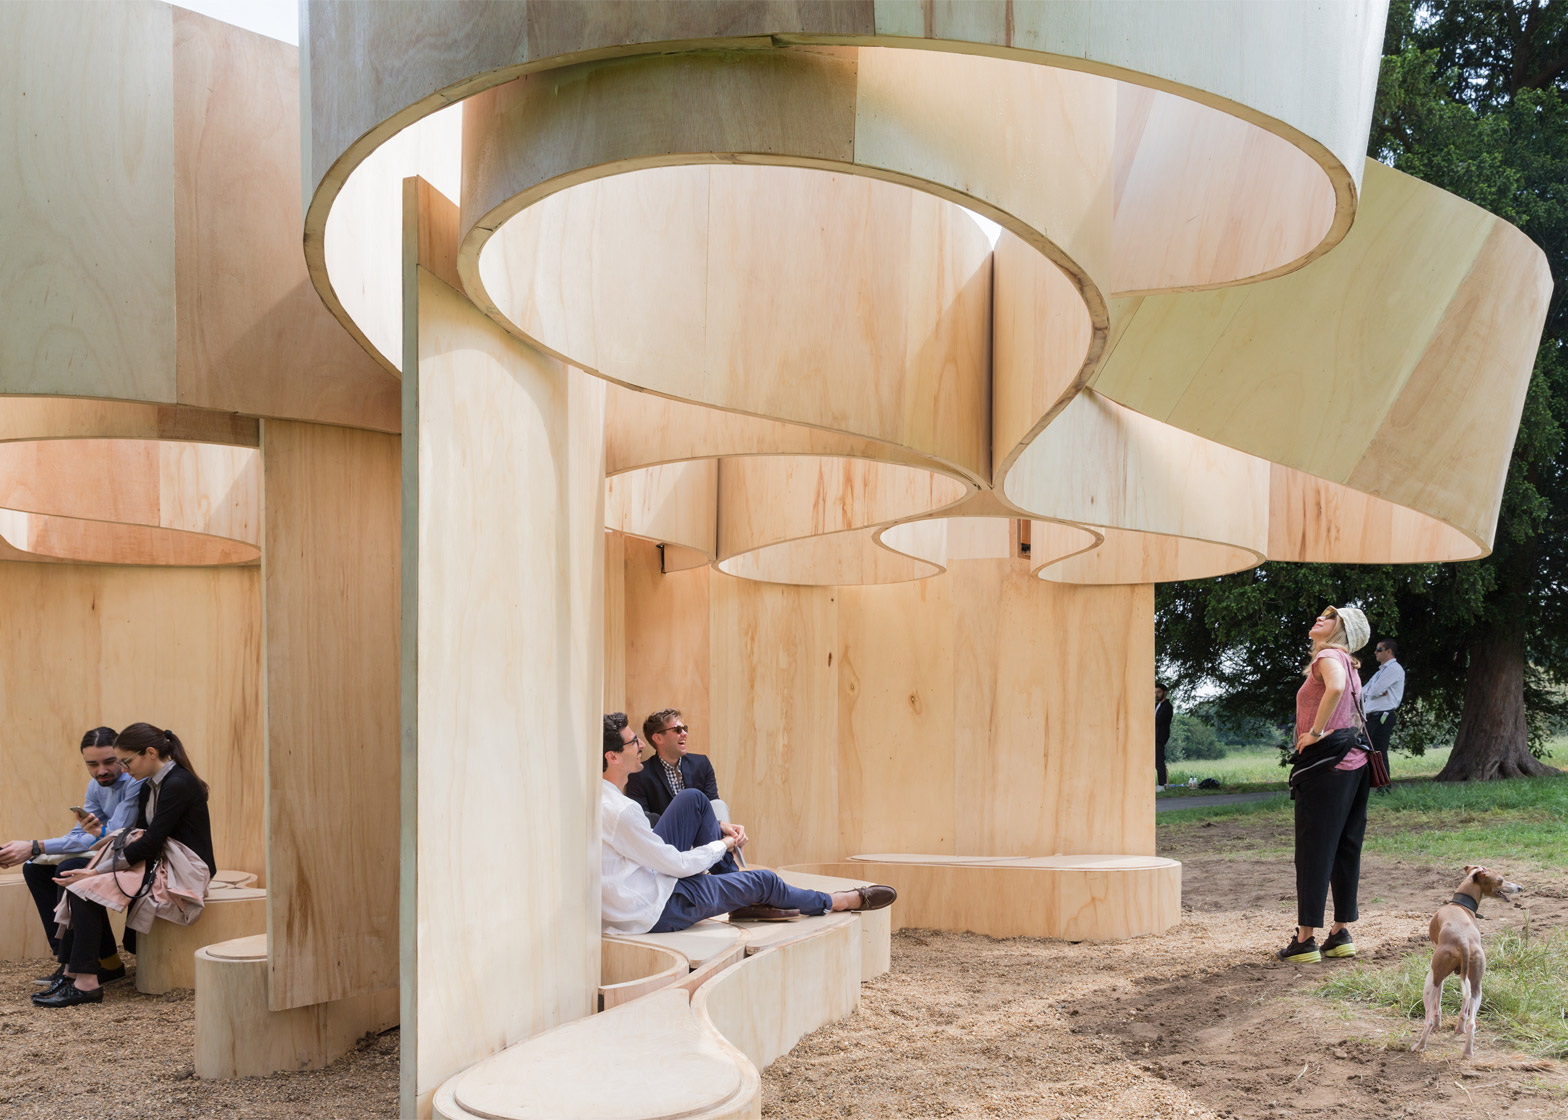 Enjoyable Architects Build Summer Houses At The Serpentine Gallery Largest Home Design Picture Inspirations Pitcheantrous